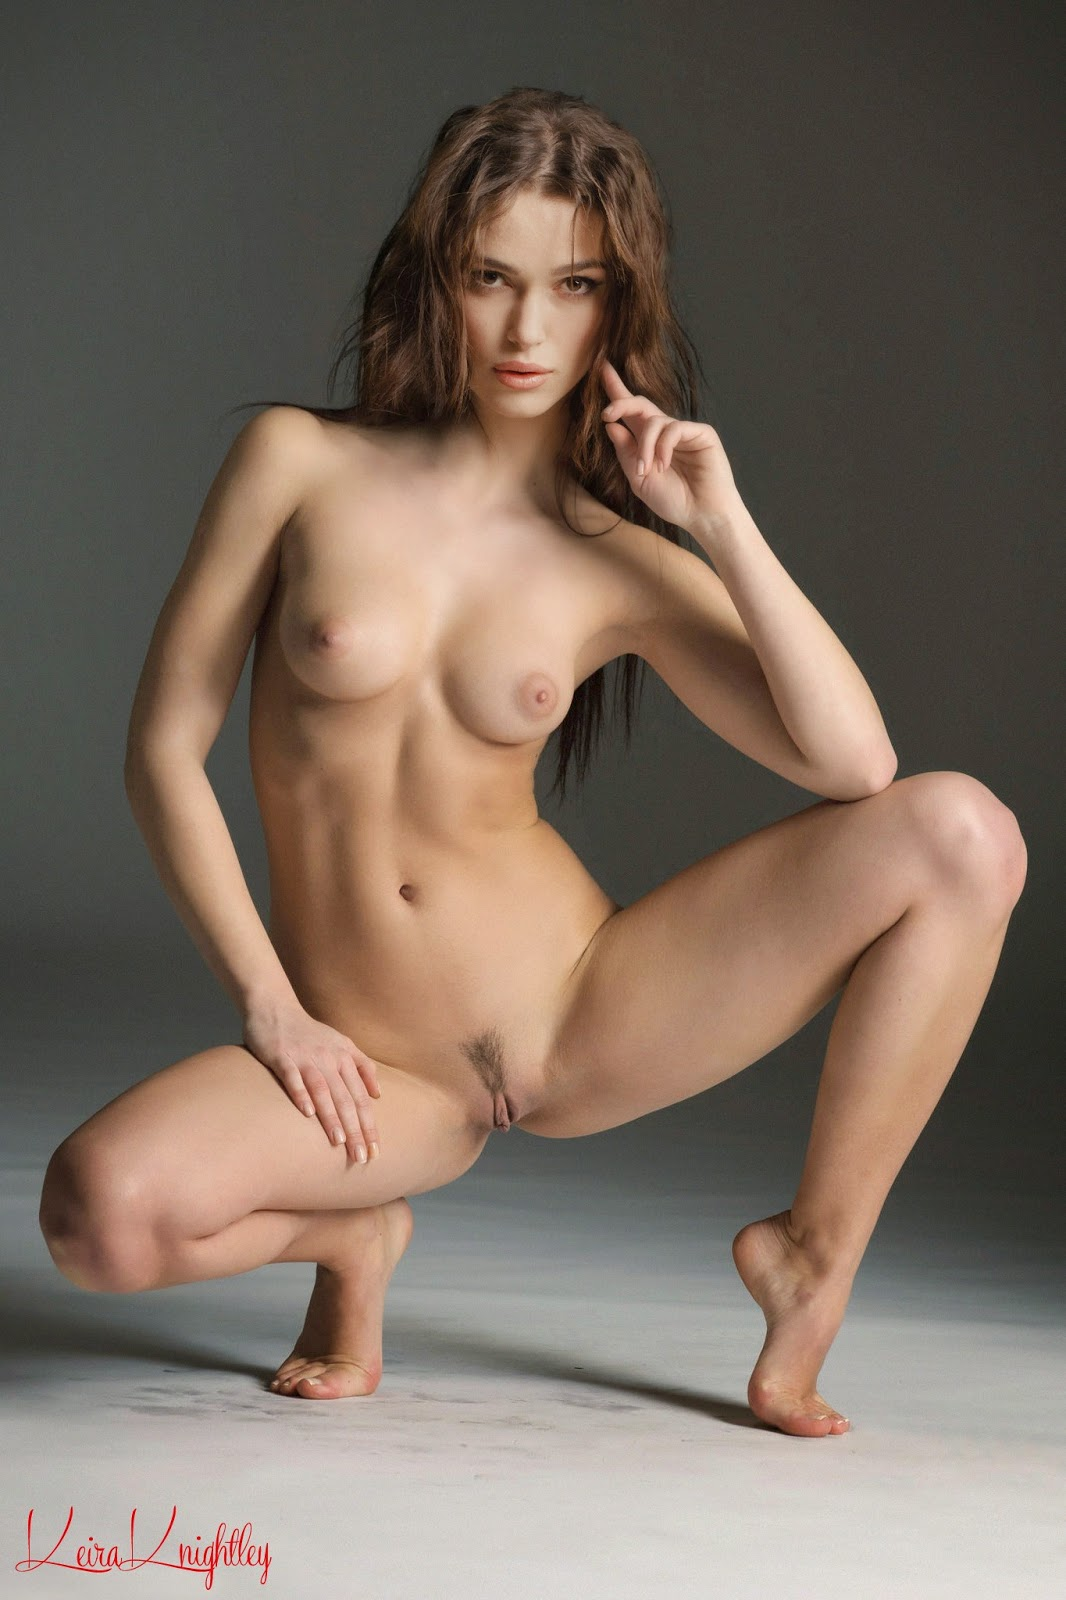 Something also Keira knightley nudes videos free suggest